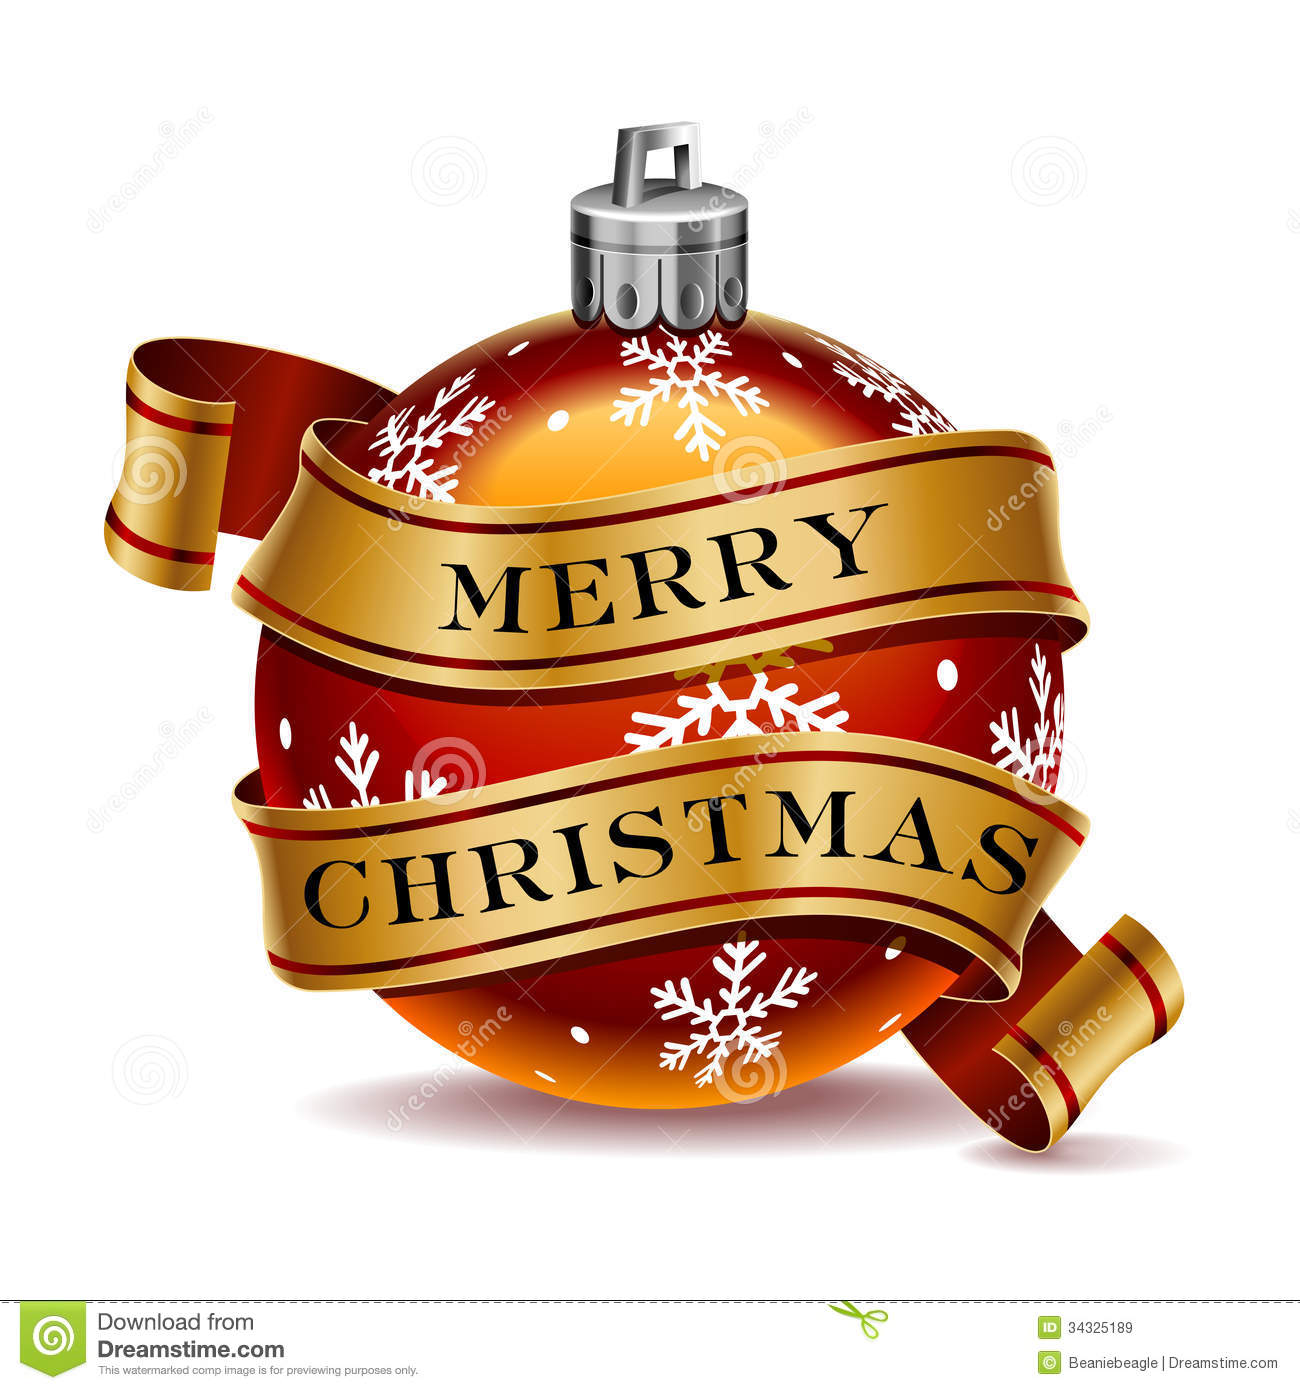 Image result for royalty free images merry christmas